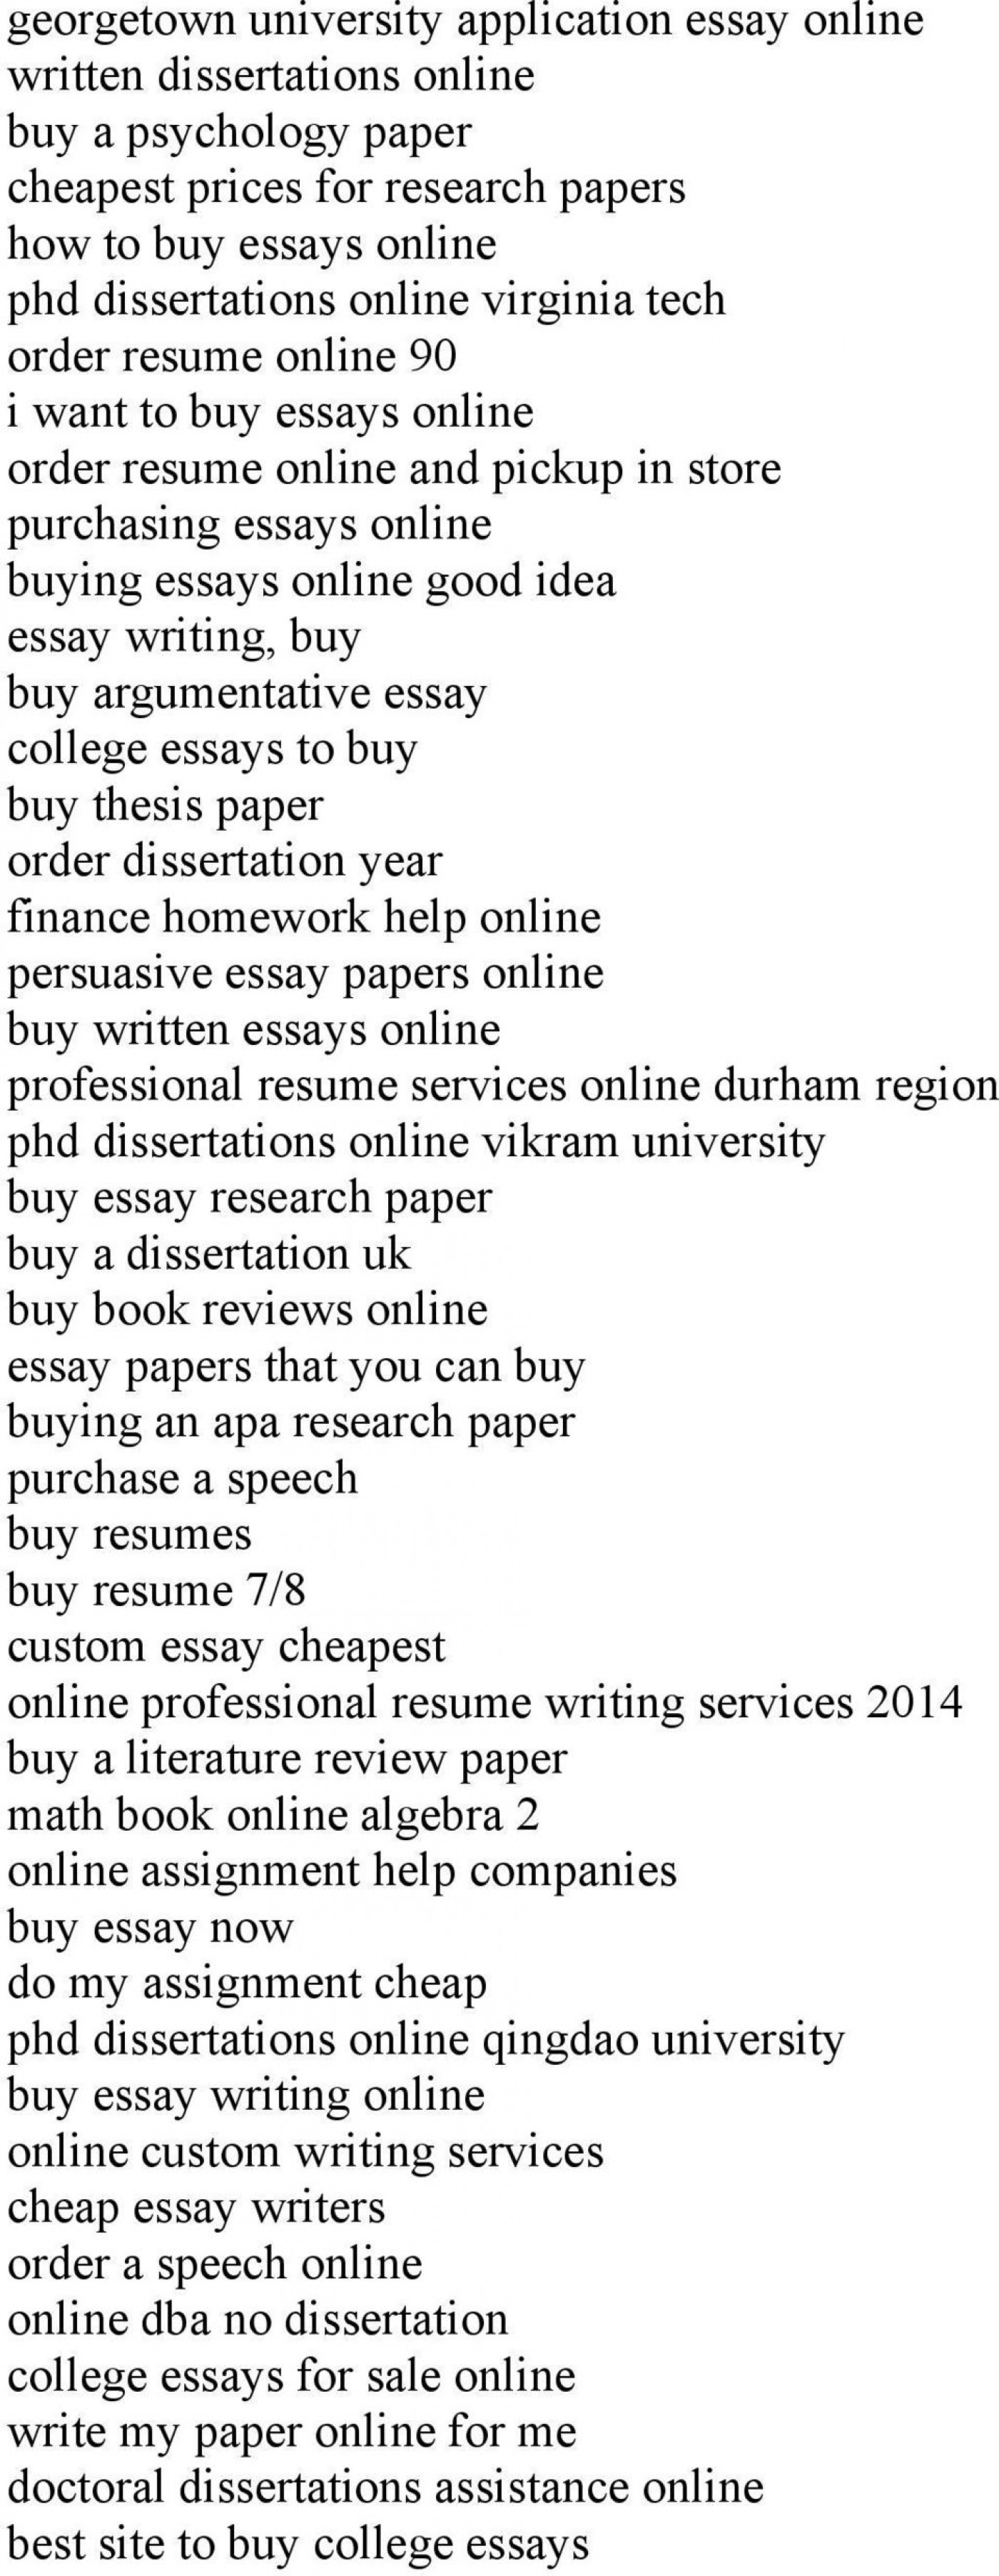 004 Research Paper Buying Page 4 Best A Is Plagiarism Impulse Behavior Online 1400